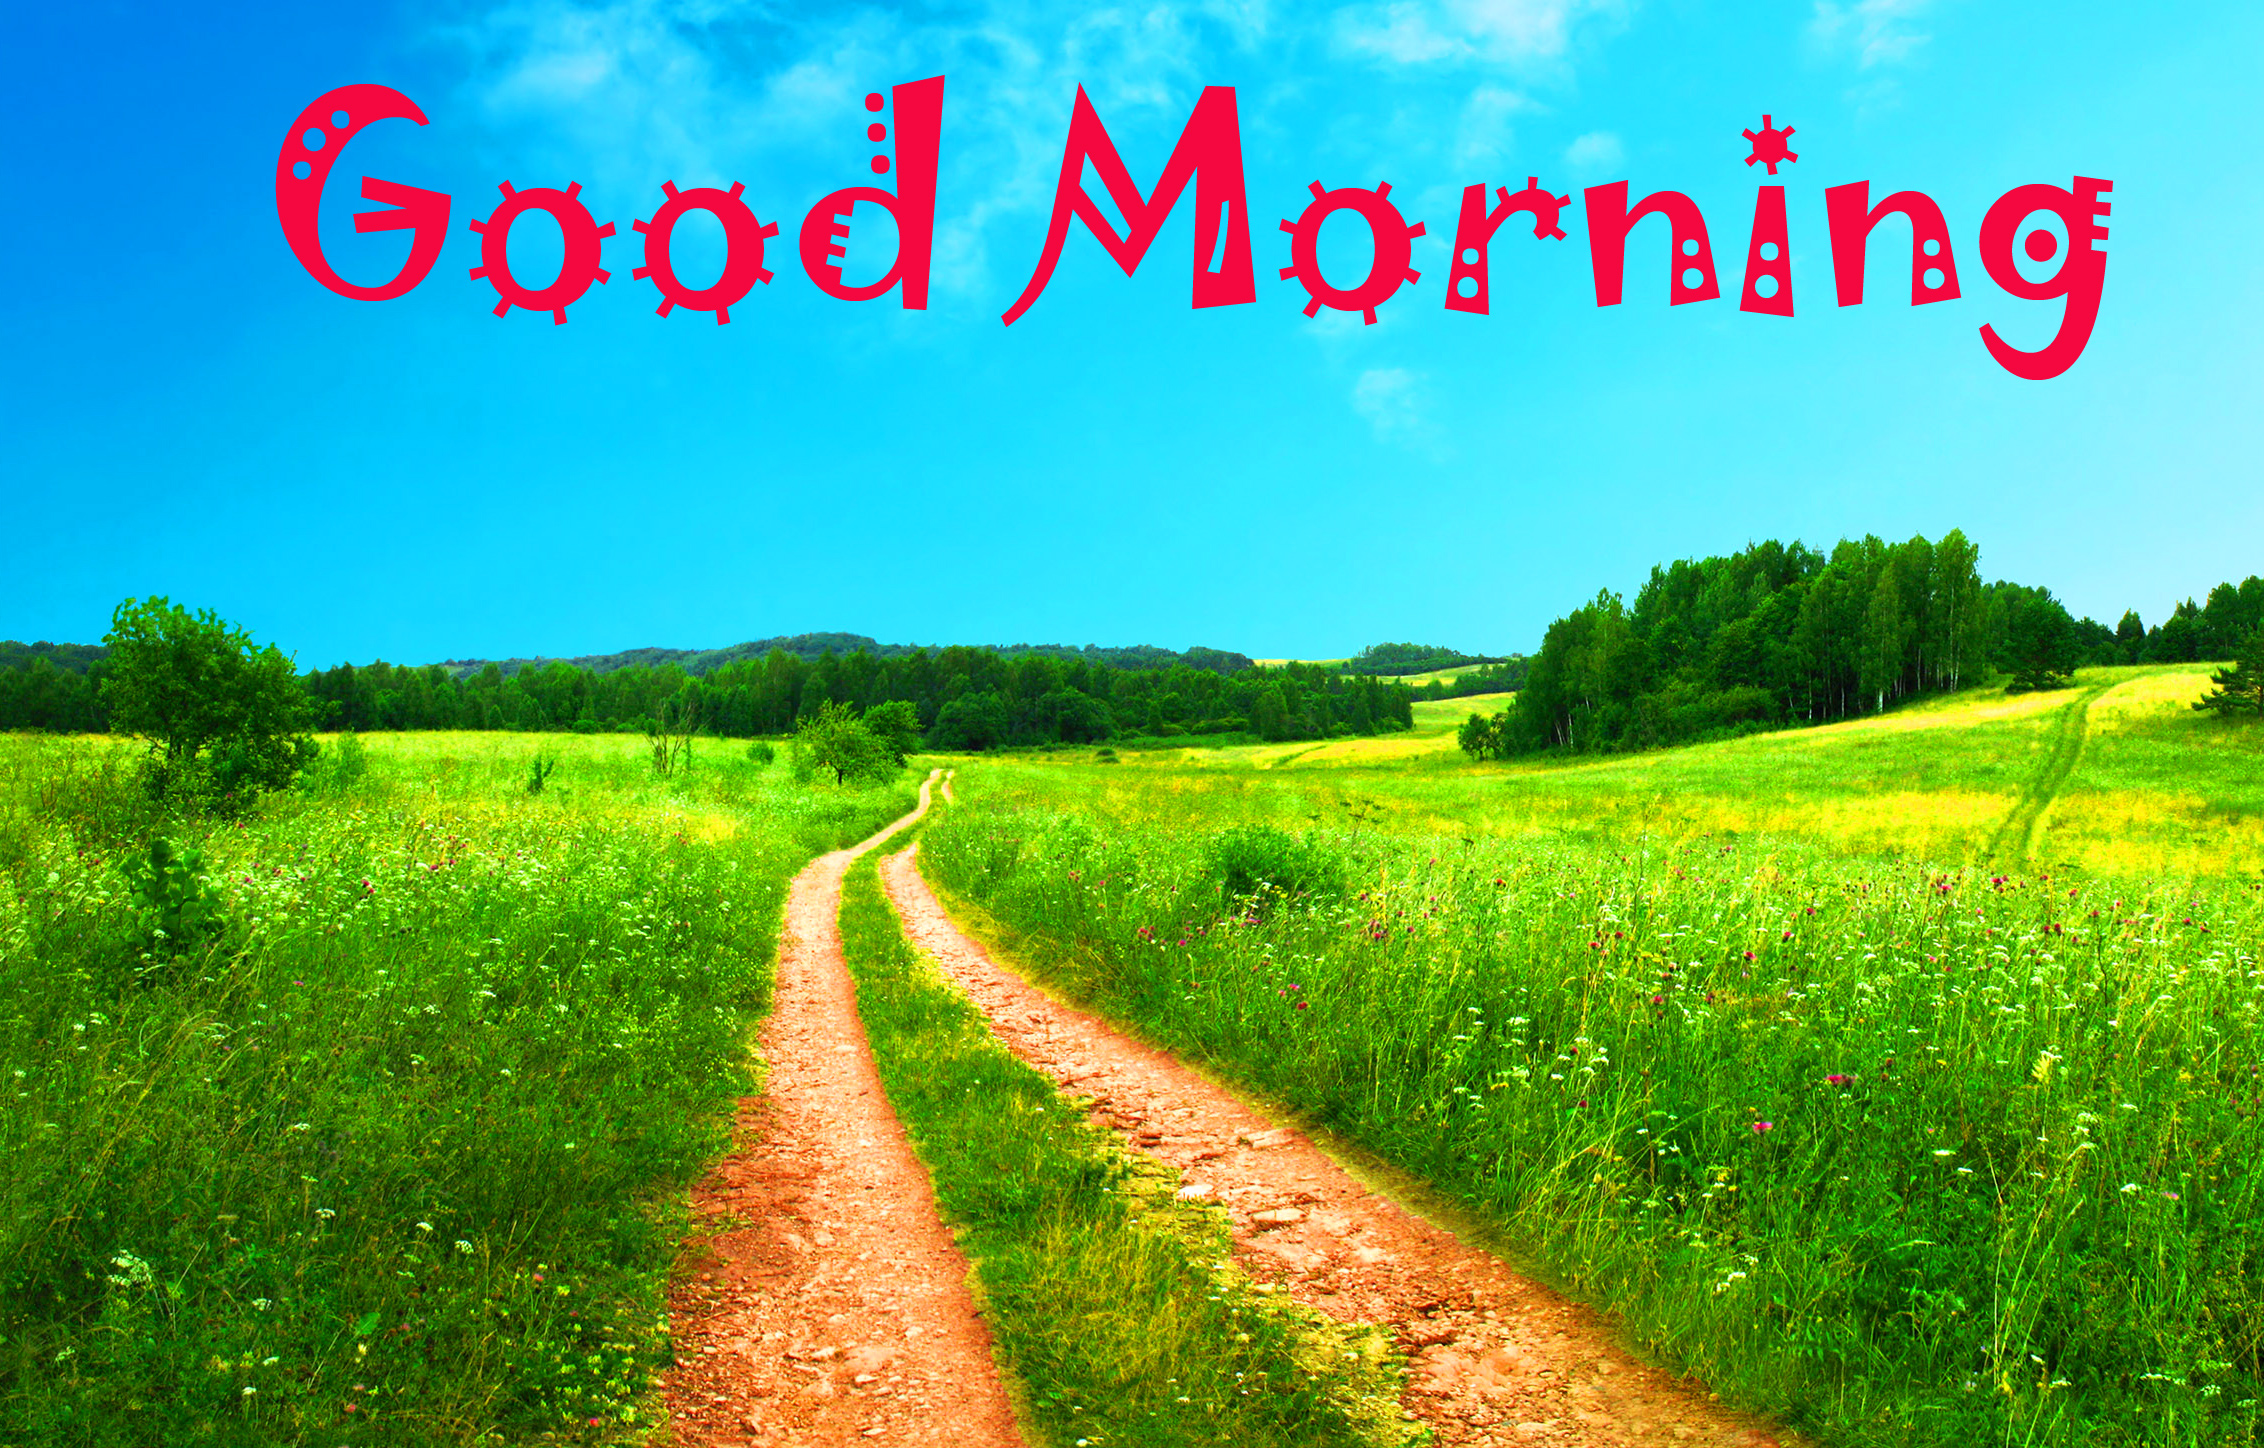 Good Morning Images Wallpaper photo Pictures Free Download